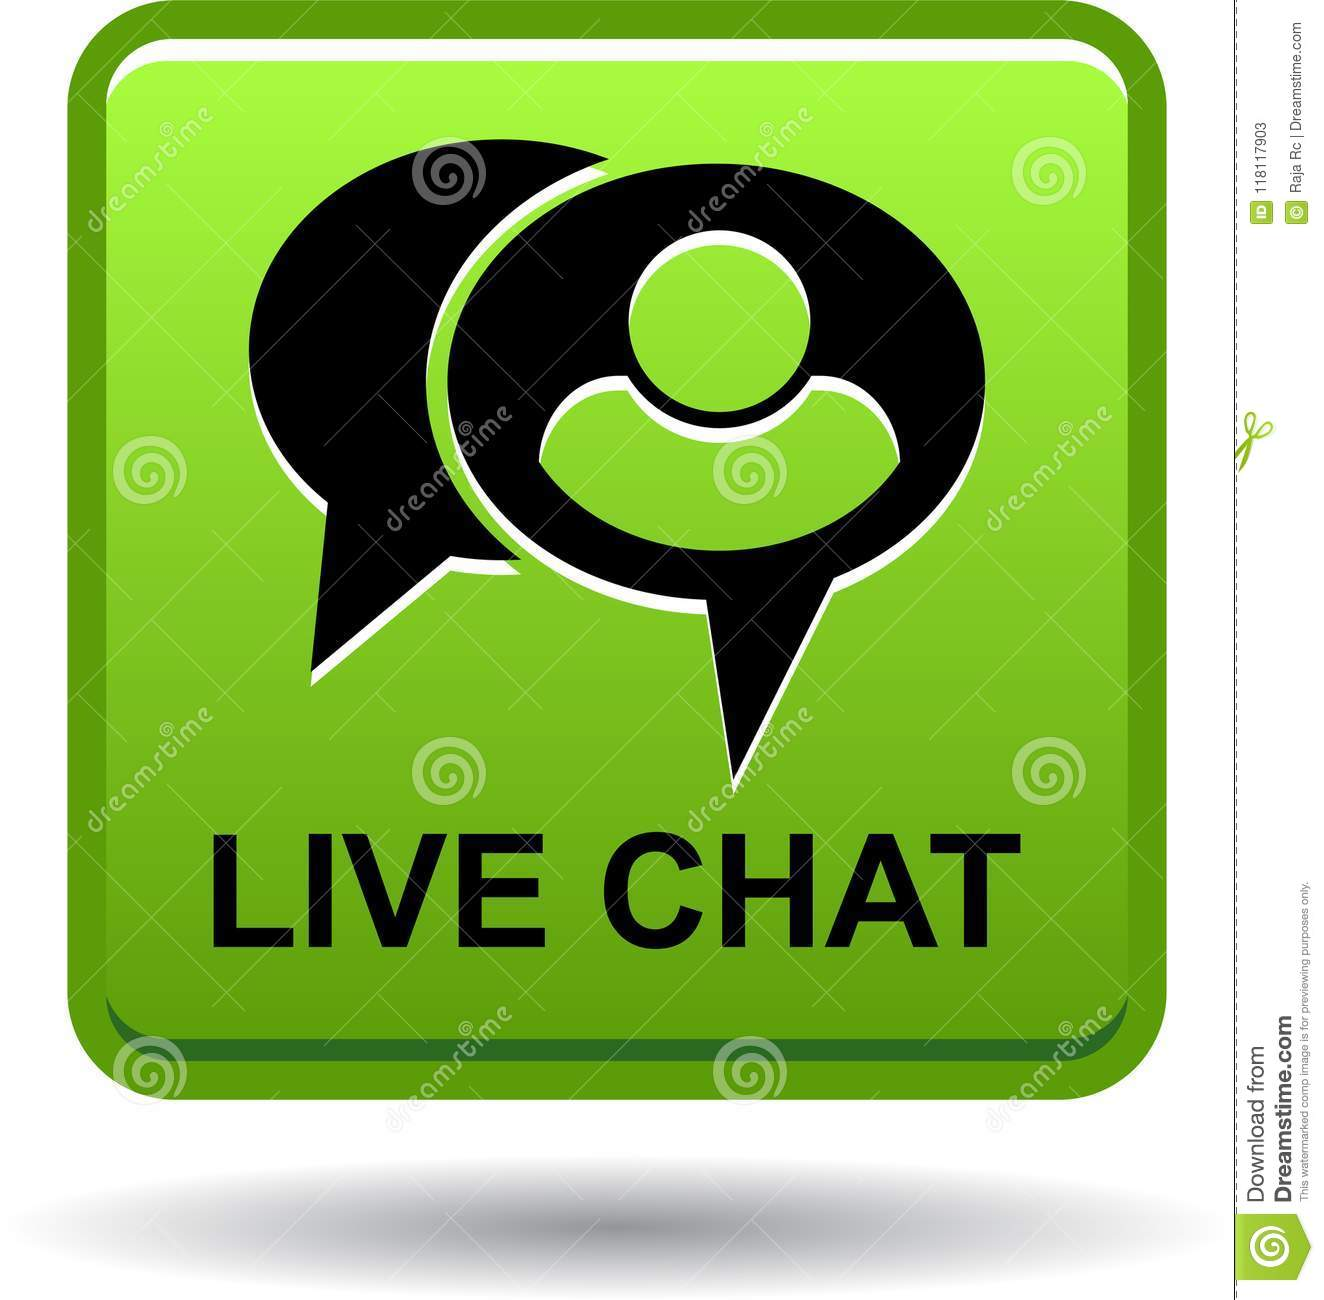 Live Chat Icon Web Button Green Stock Vector - Illustration